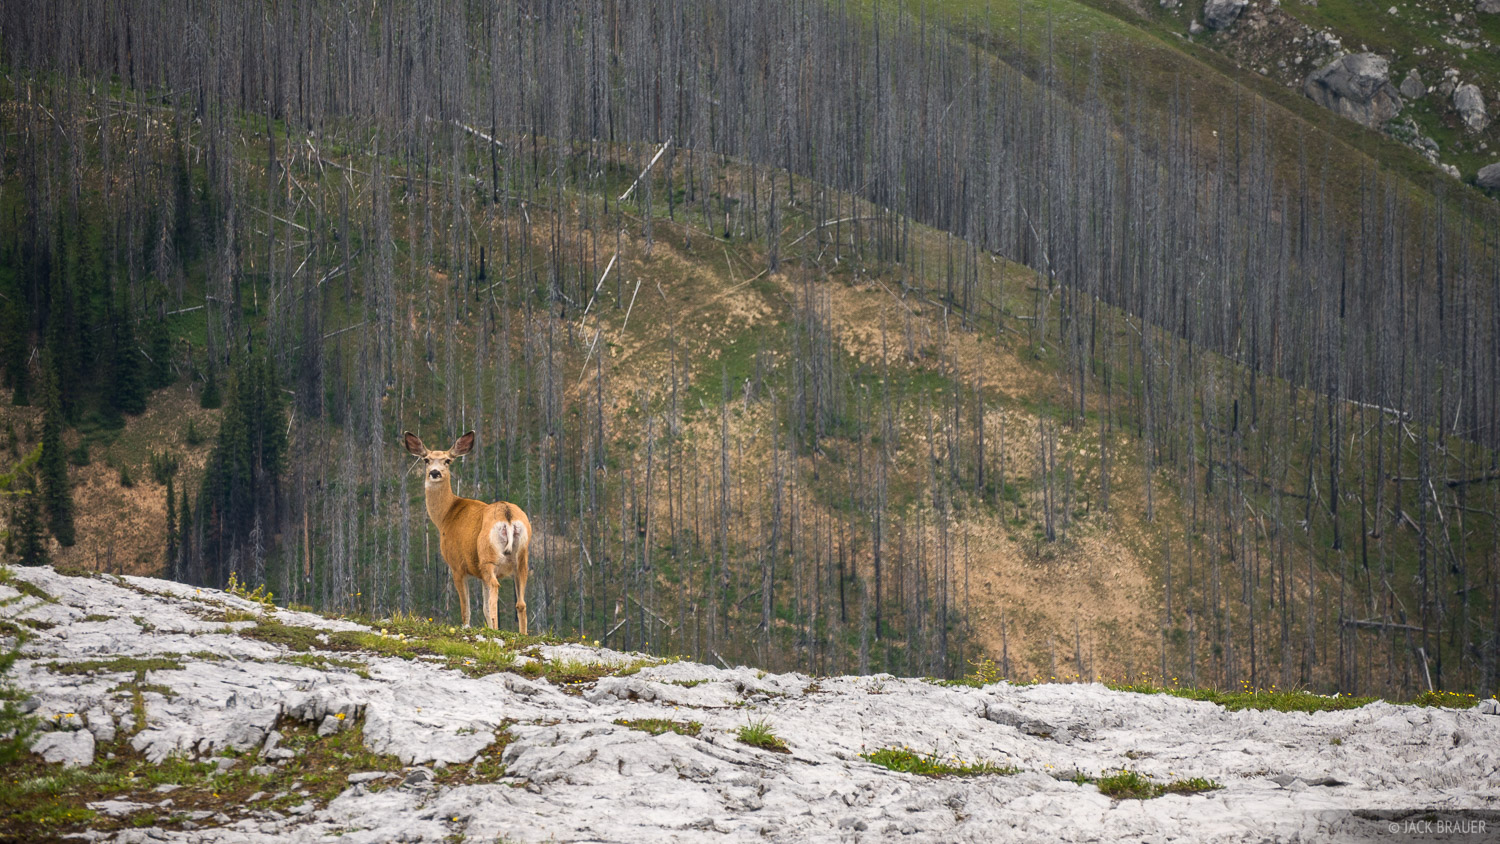 British Columbia, Canada, Canadian Rockies, Height of the Rockies, deer, BC, photo